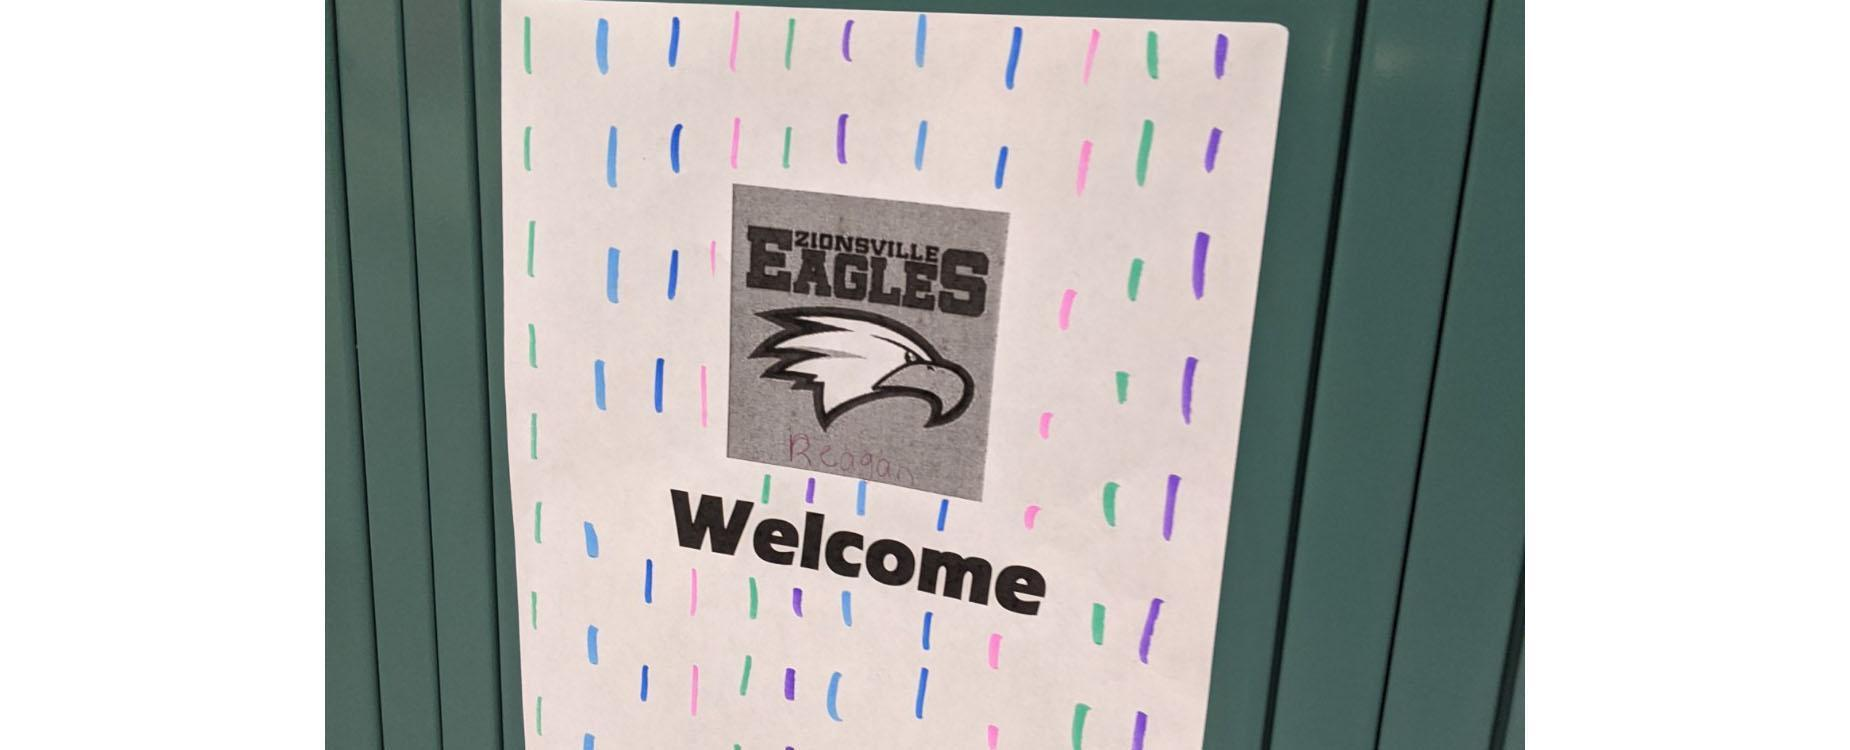 welcome zionsville eagles